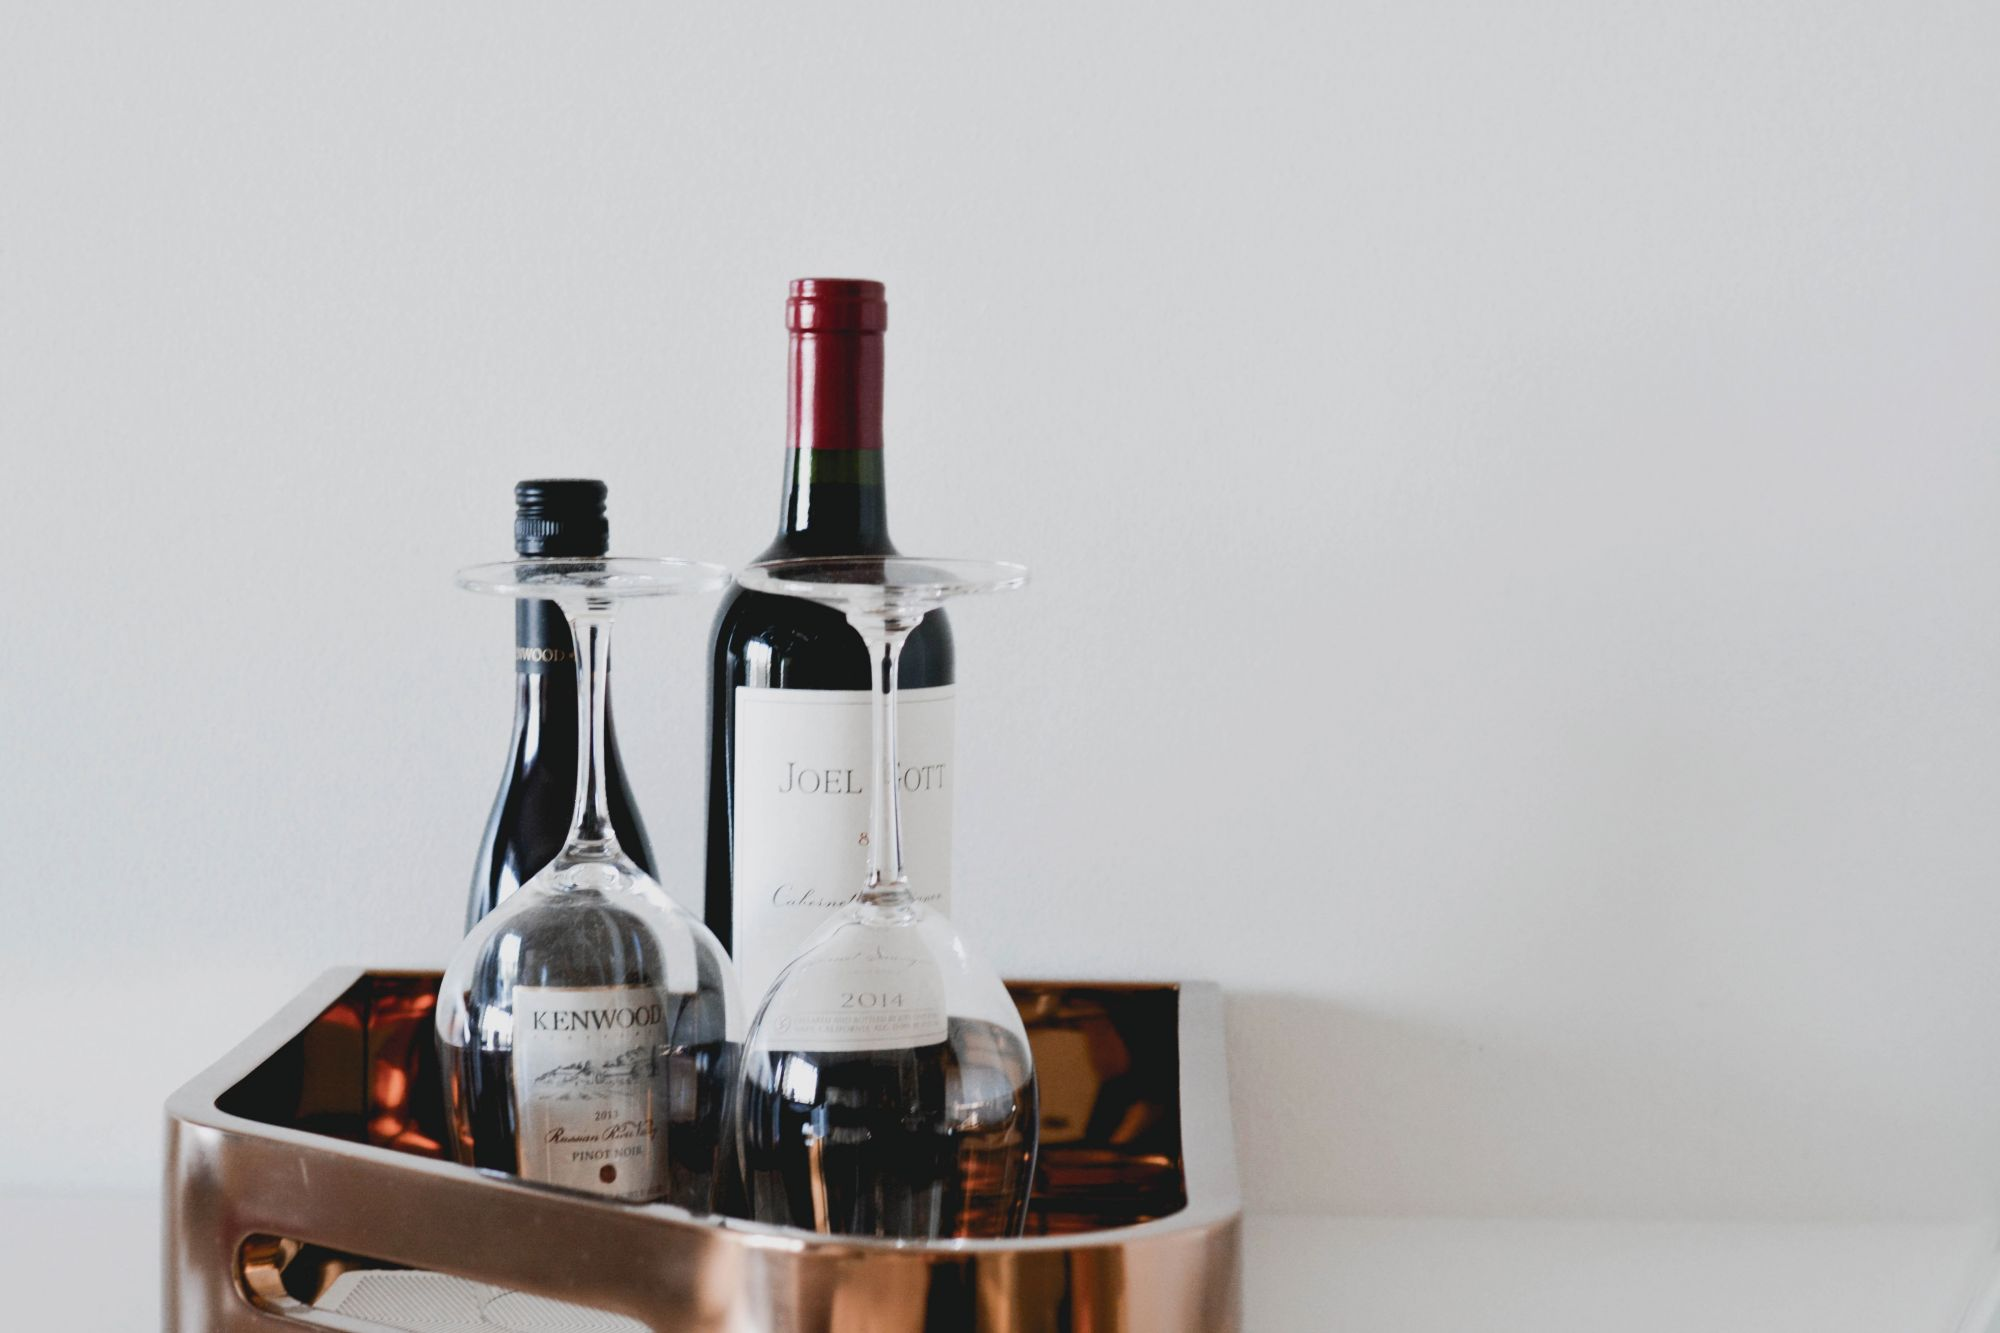 The Best Wines For Chinese New Year 2021, According To Our Resident Wine Expert